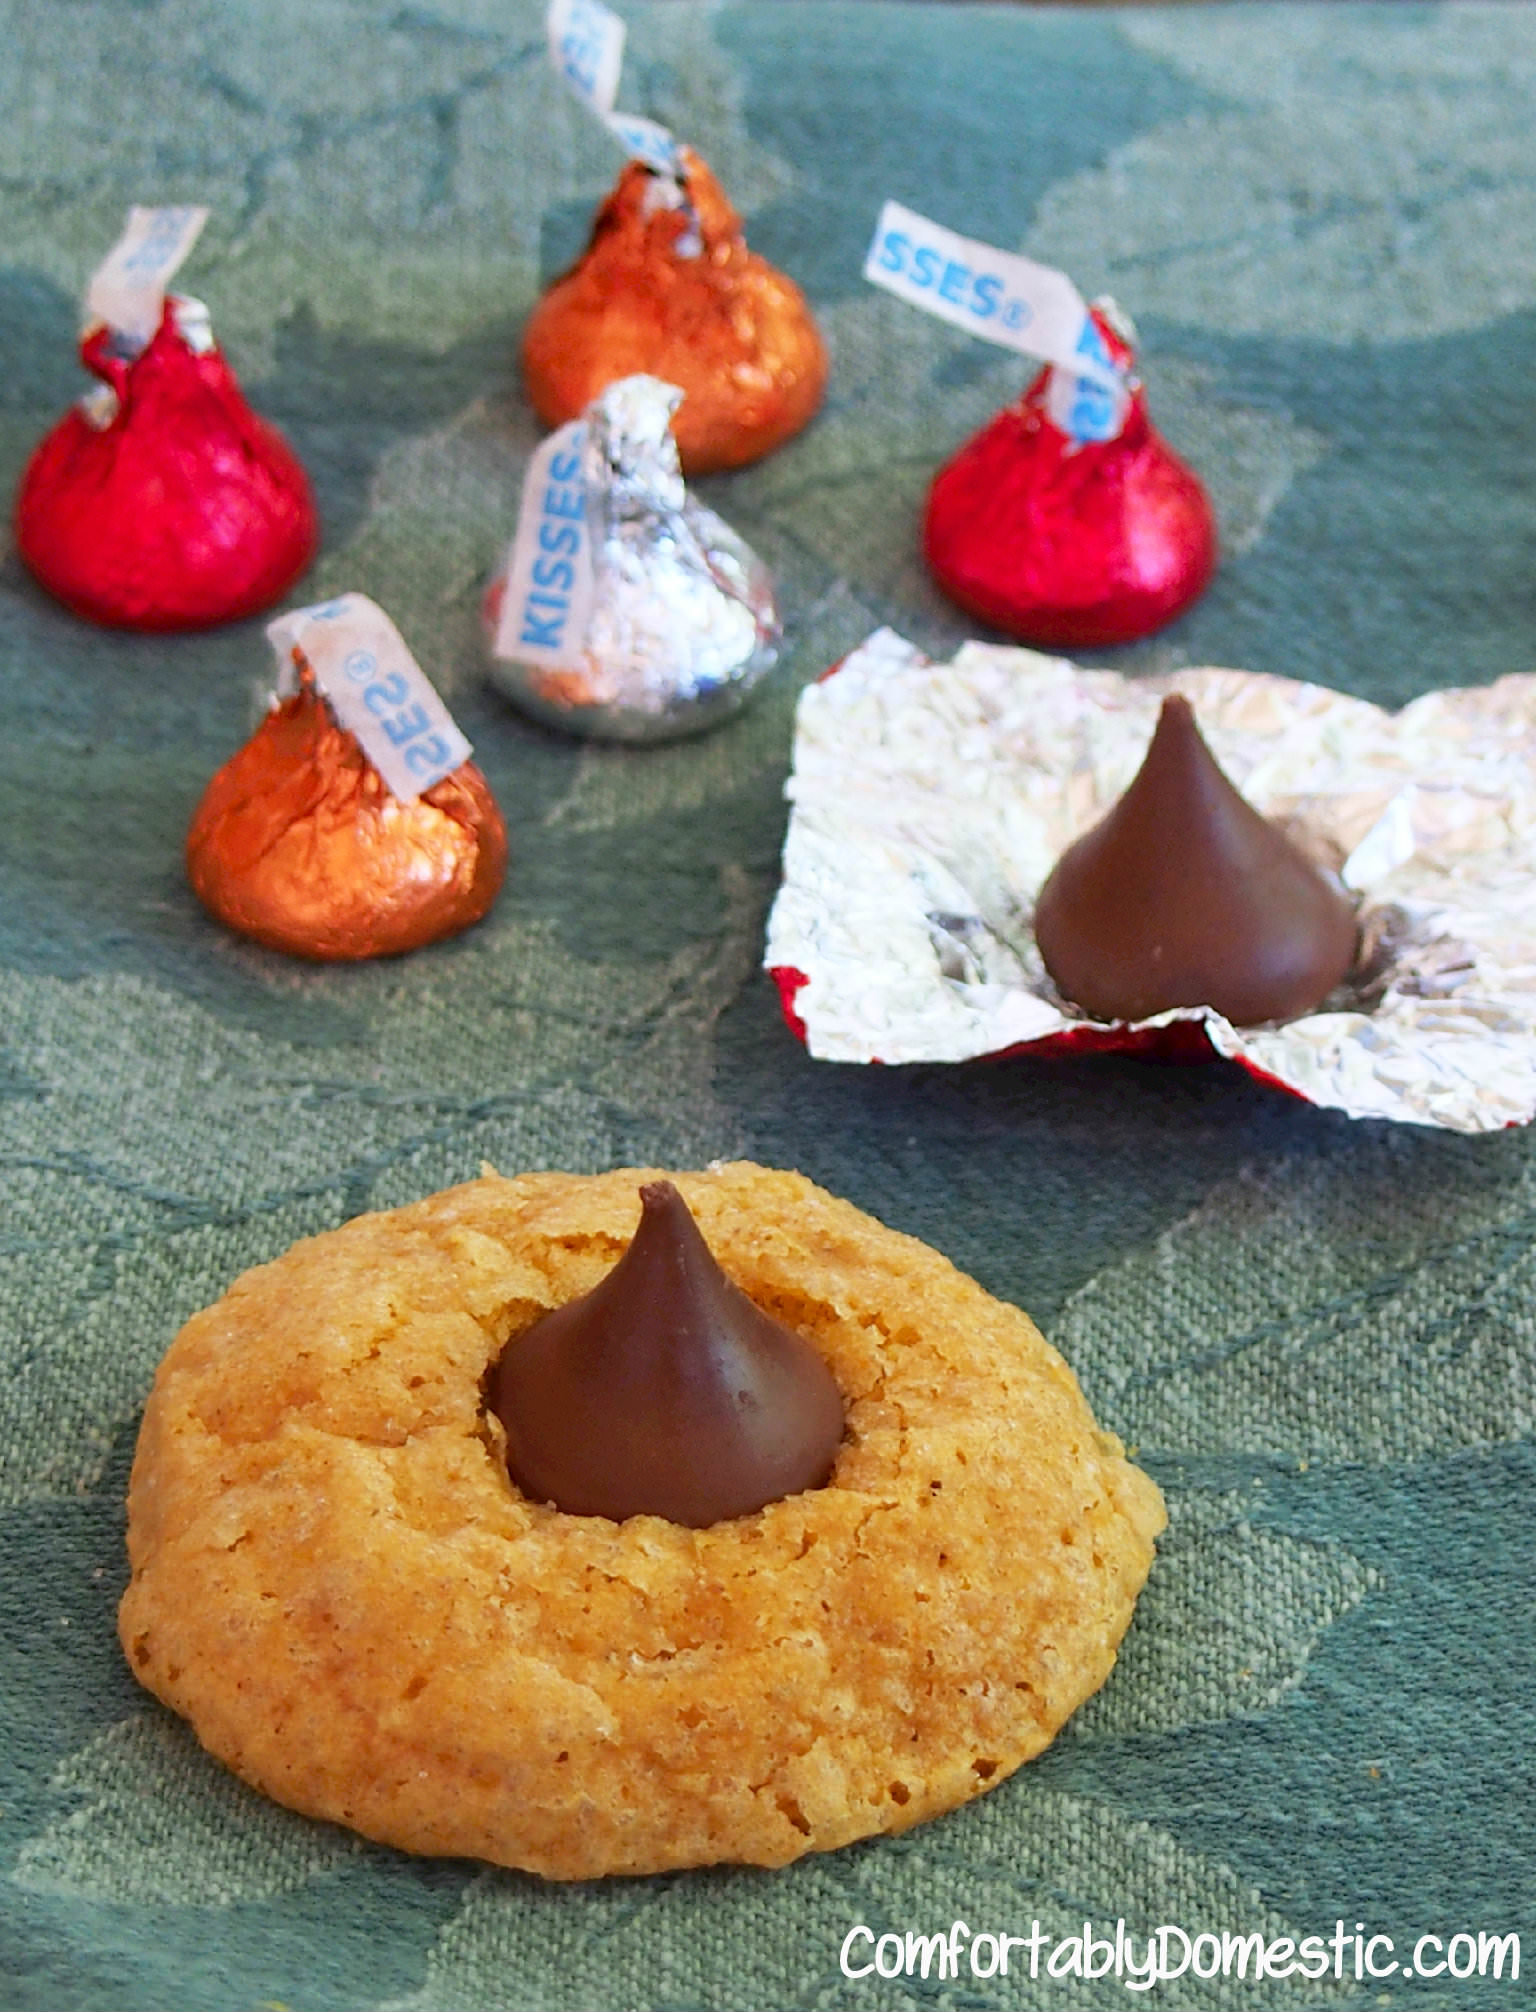 Pumpkin kiss cookies are the classic holiday favorite, with a kick! Deliciously soft and spicy pumpkin cookies with a fat kiss of chocolate in the center.